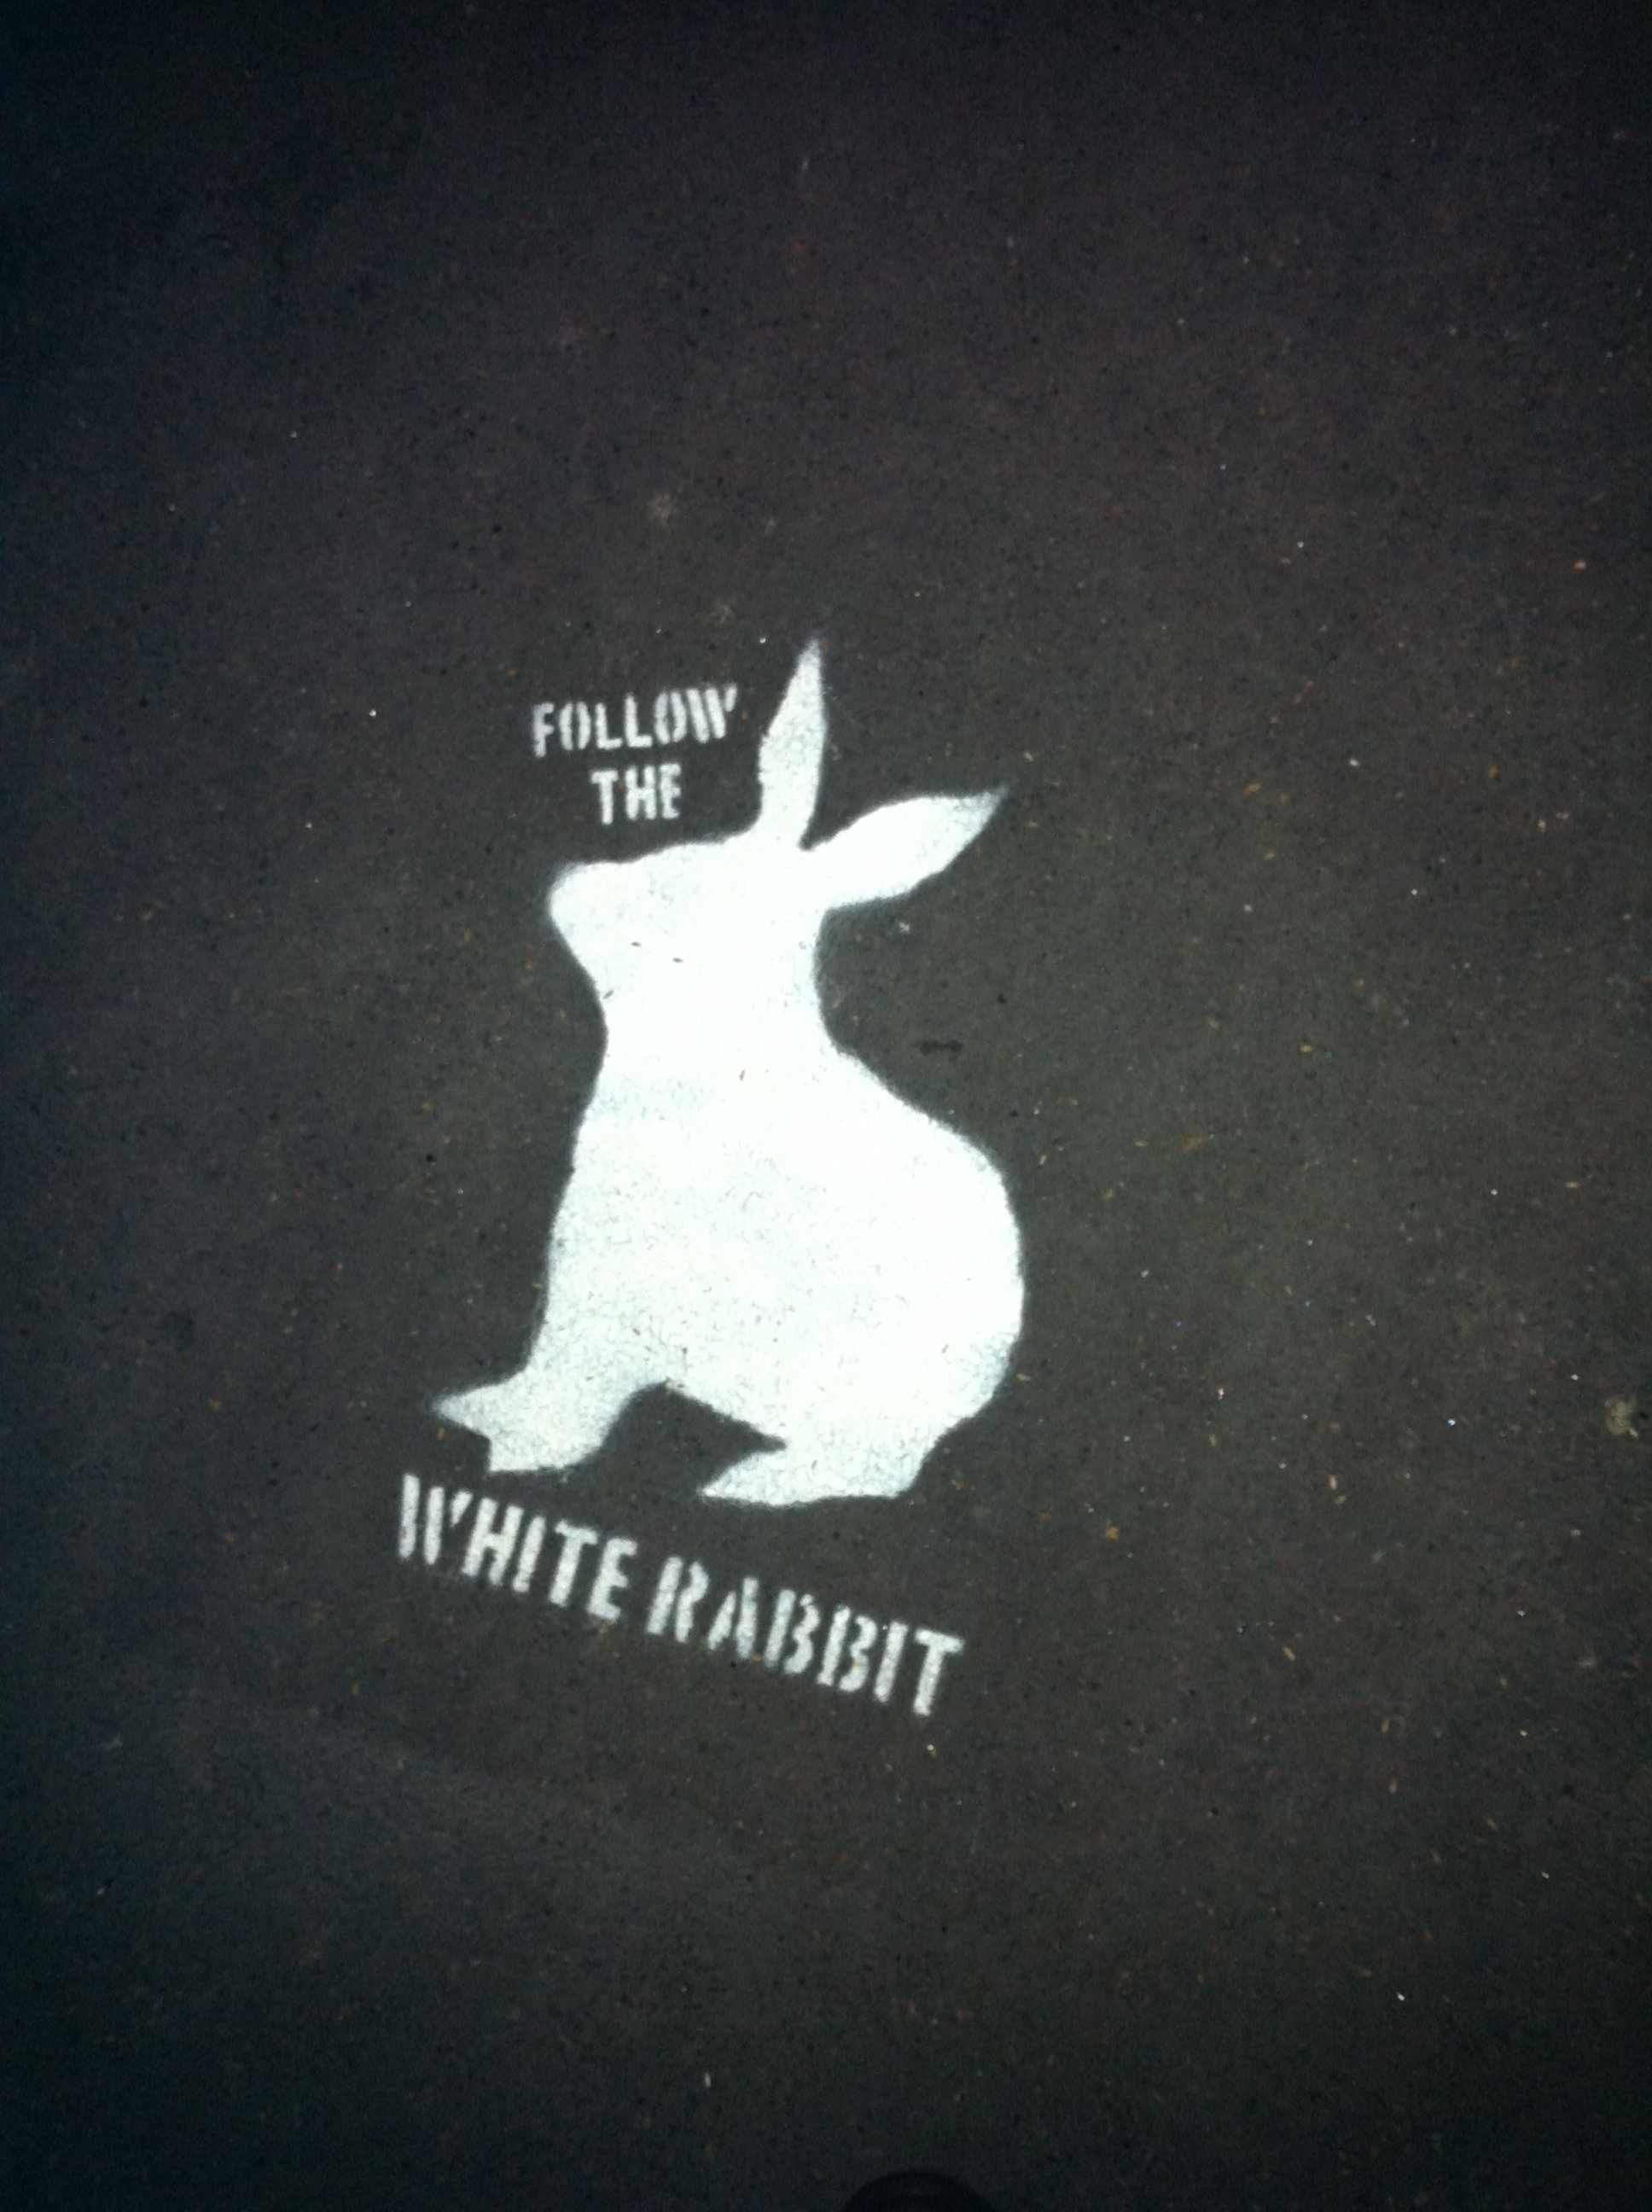 Alice S Wonderland Ch 1 Down The Rabbit Hole Follow The White